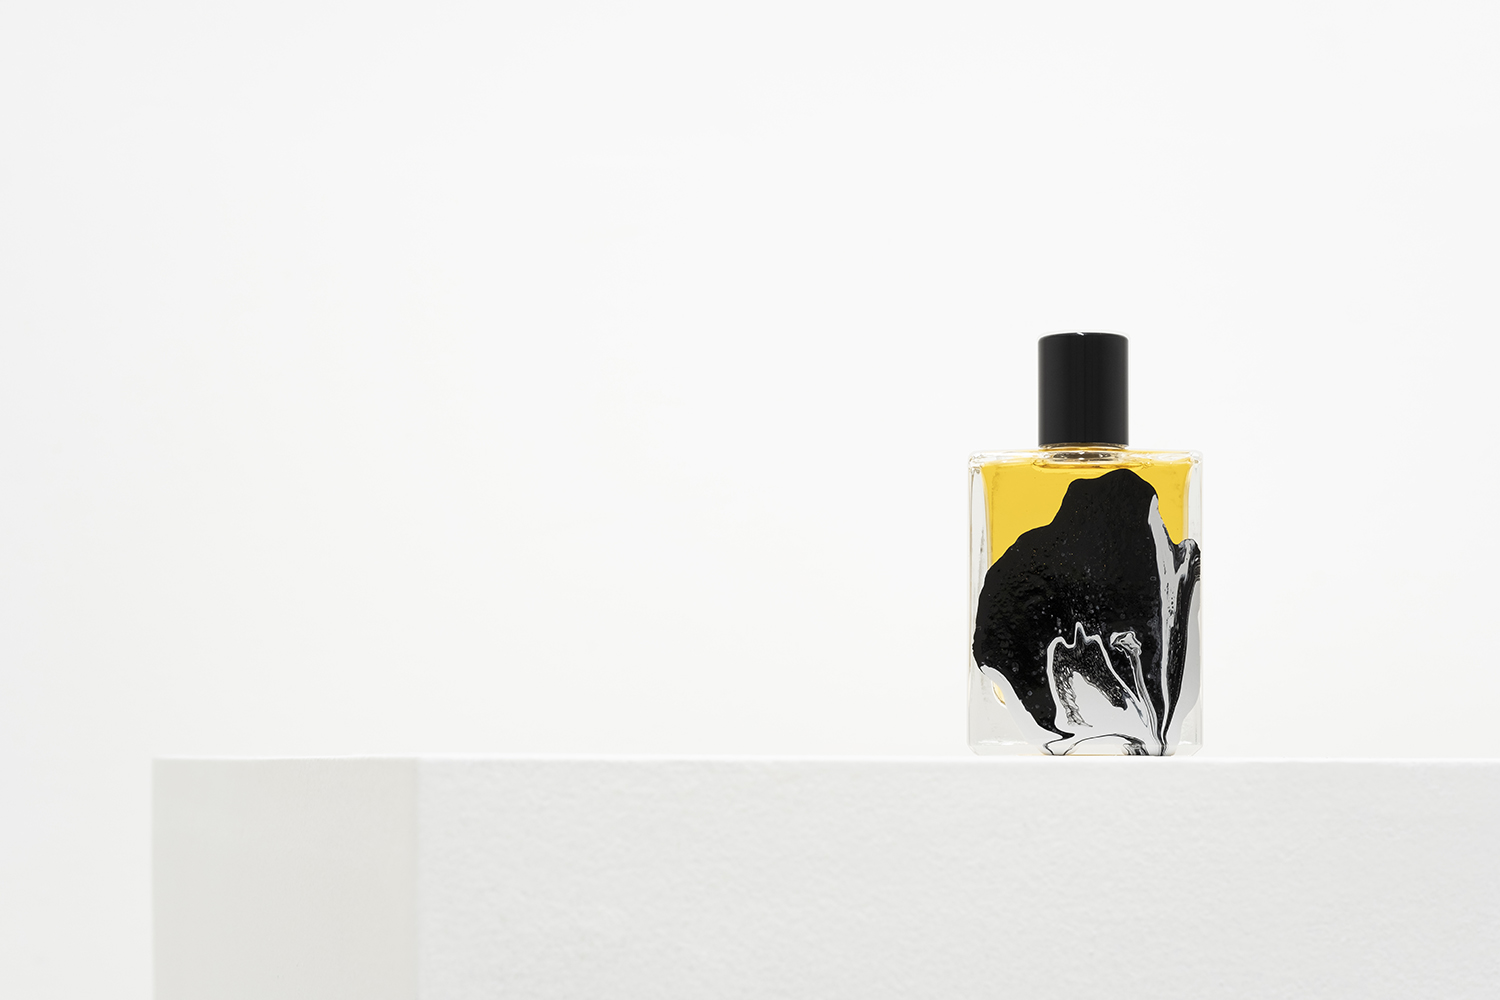 Liquid Sky Fragrance By Folie A Plusieurs Le Cinema Olfactif Film Series